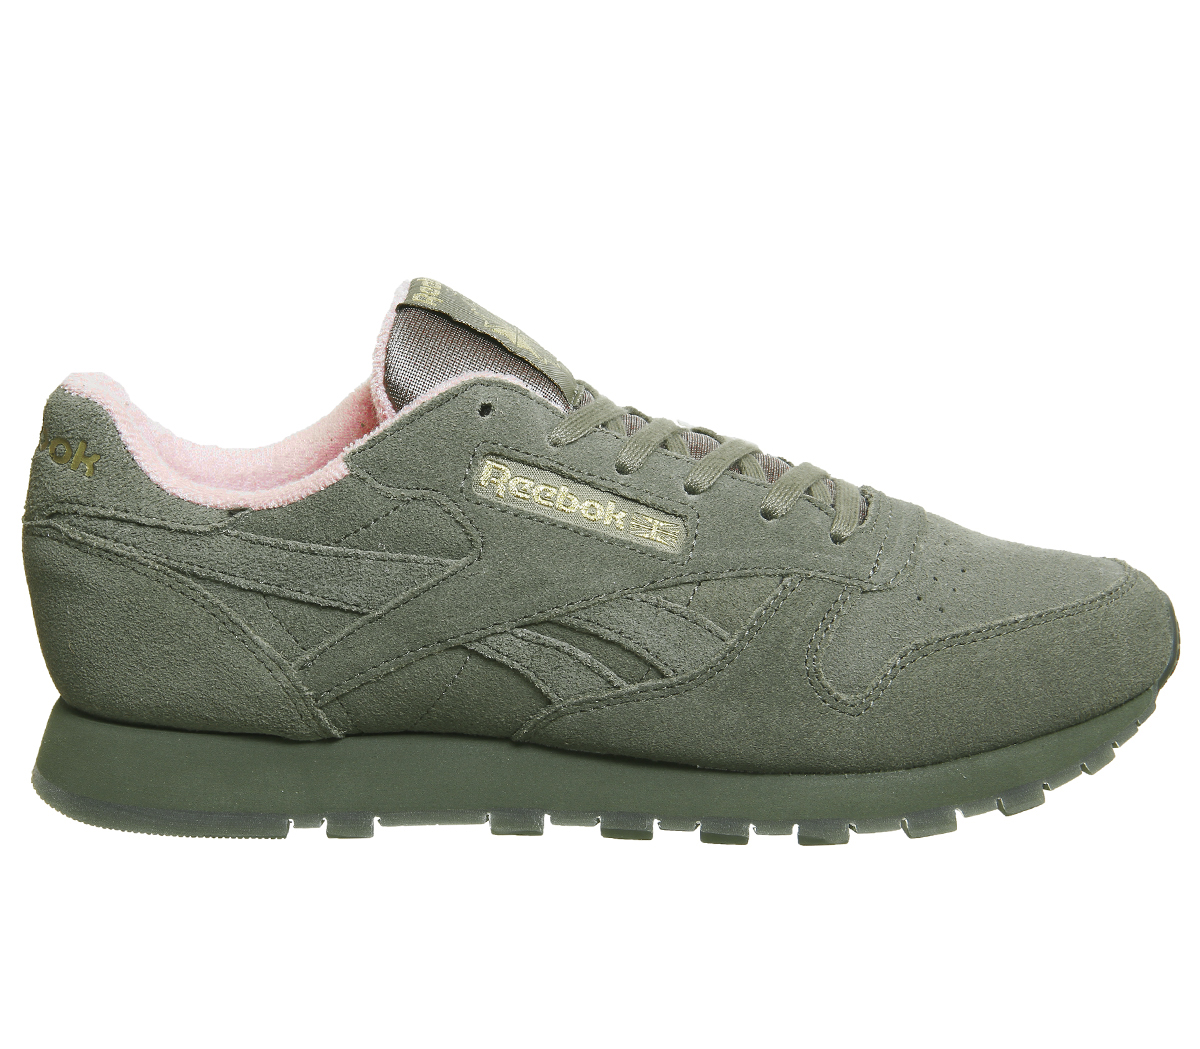 Sentinel Womens Reebok Cl Leather Trainers Hunter Green Pink Trainers Shoes 8b218b4690a9